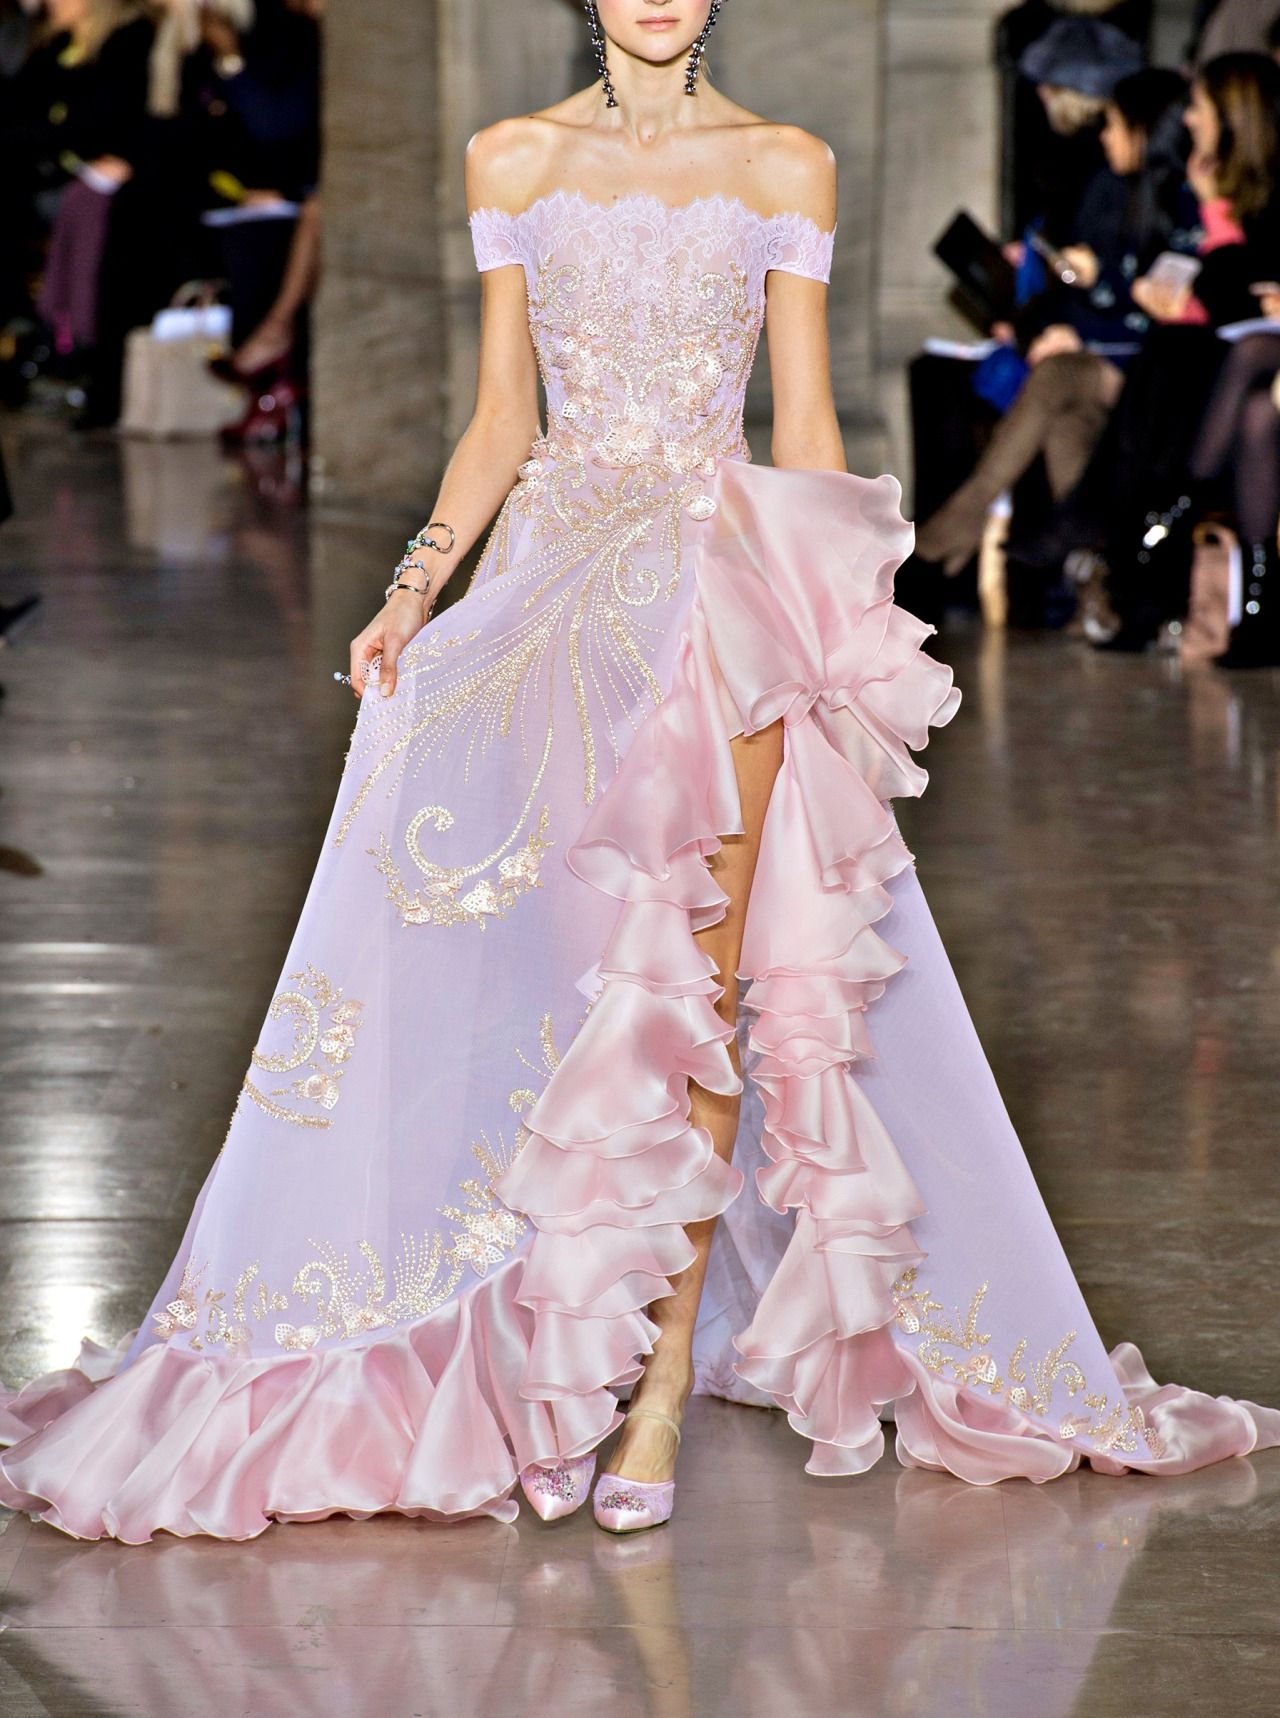 Georges hobeika spring couture dream dress pinterest guo